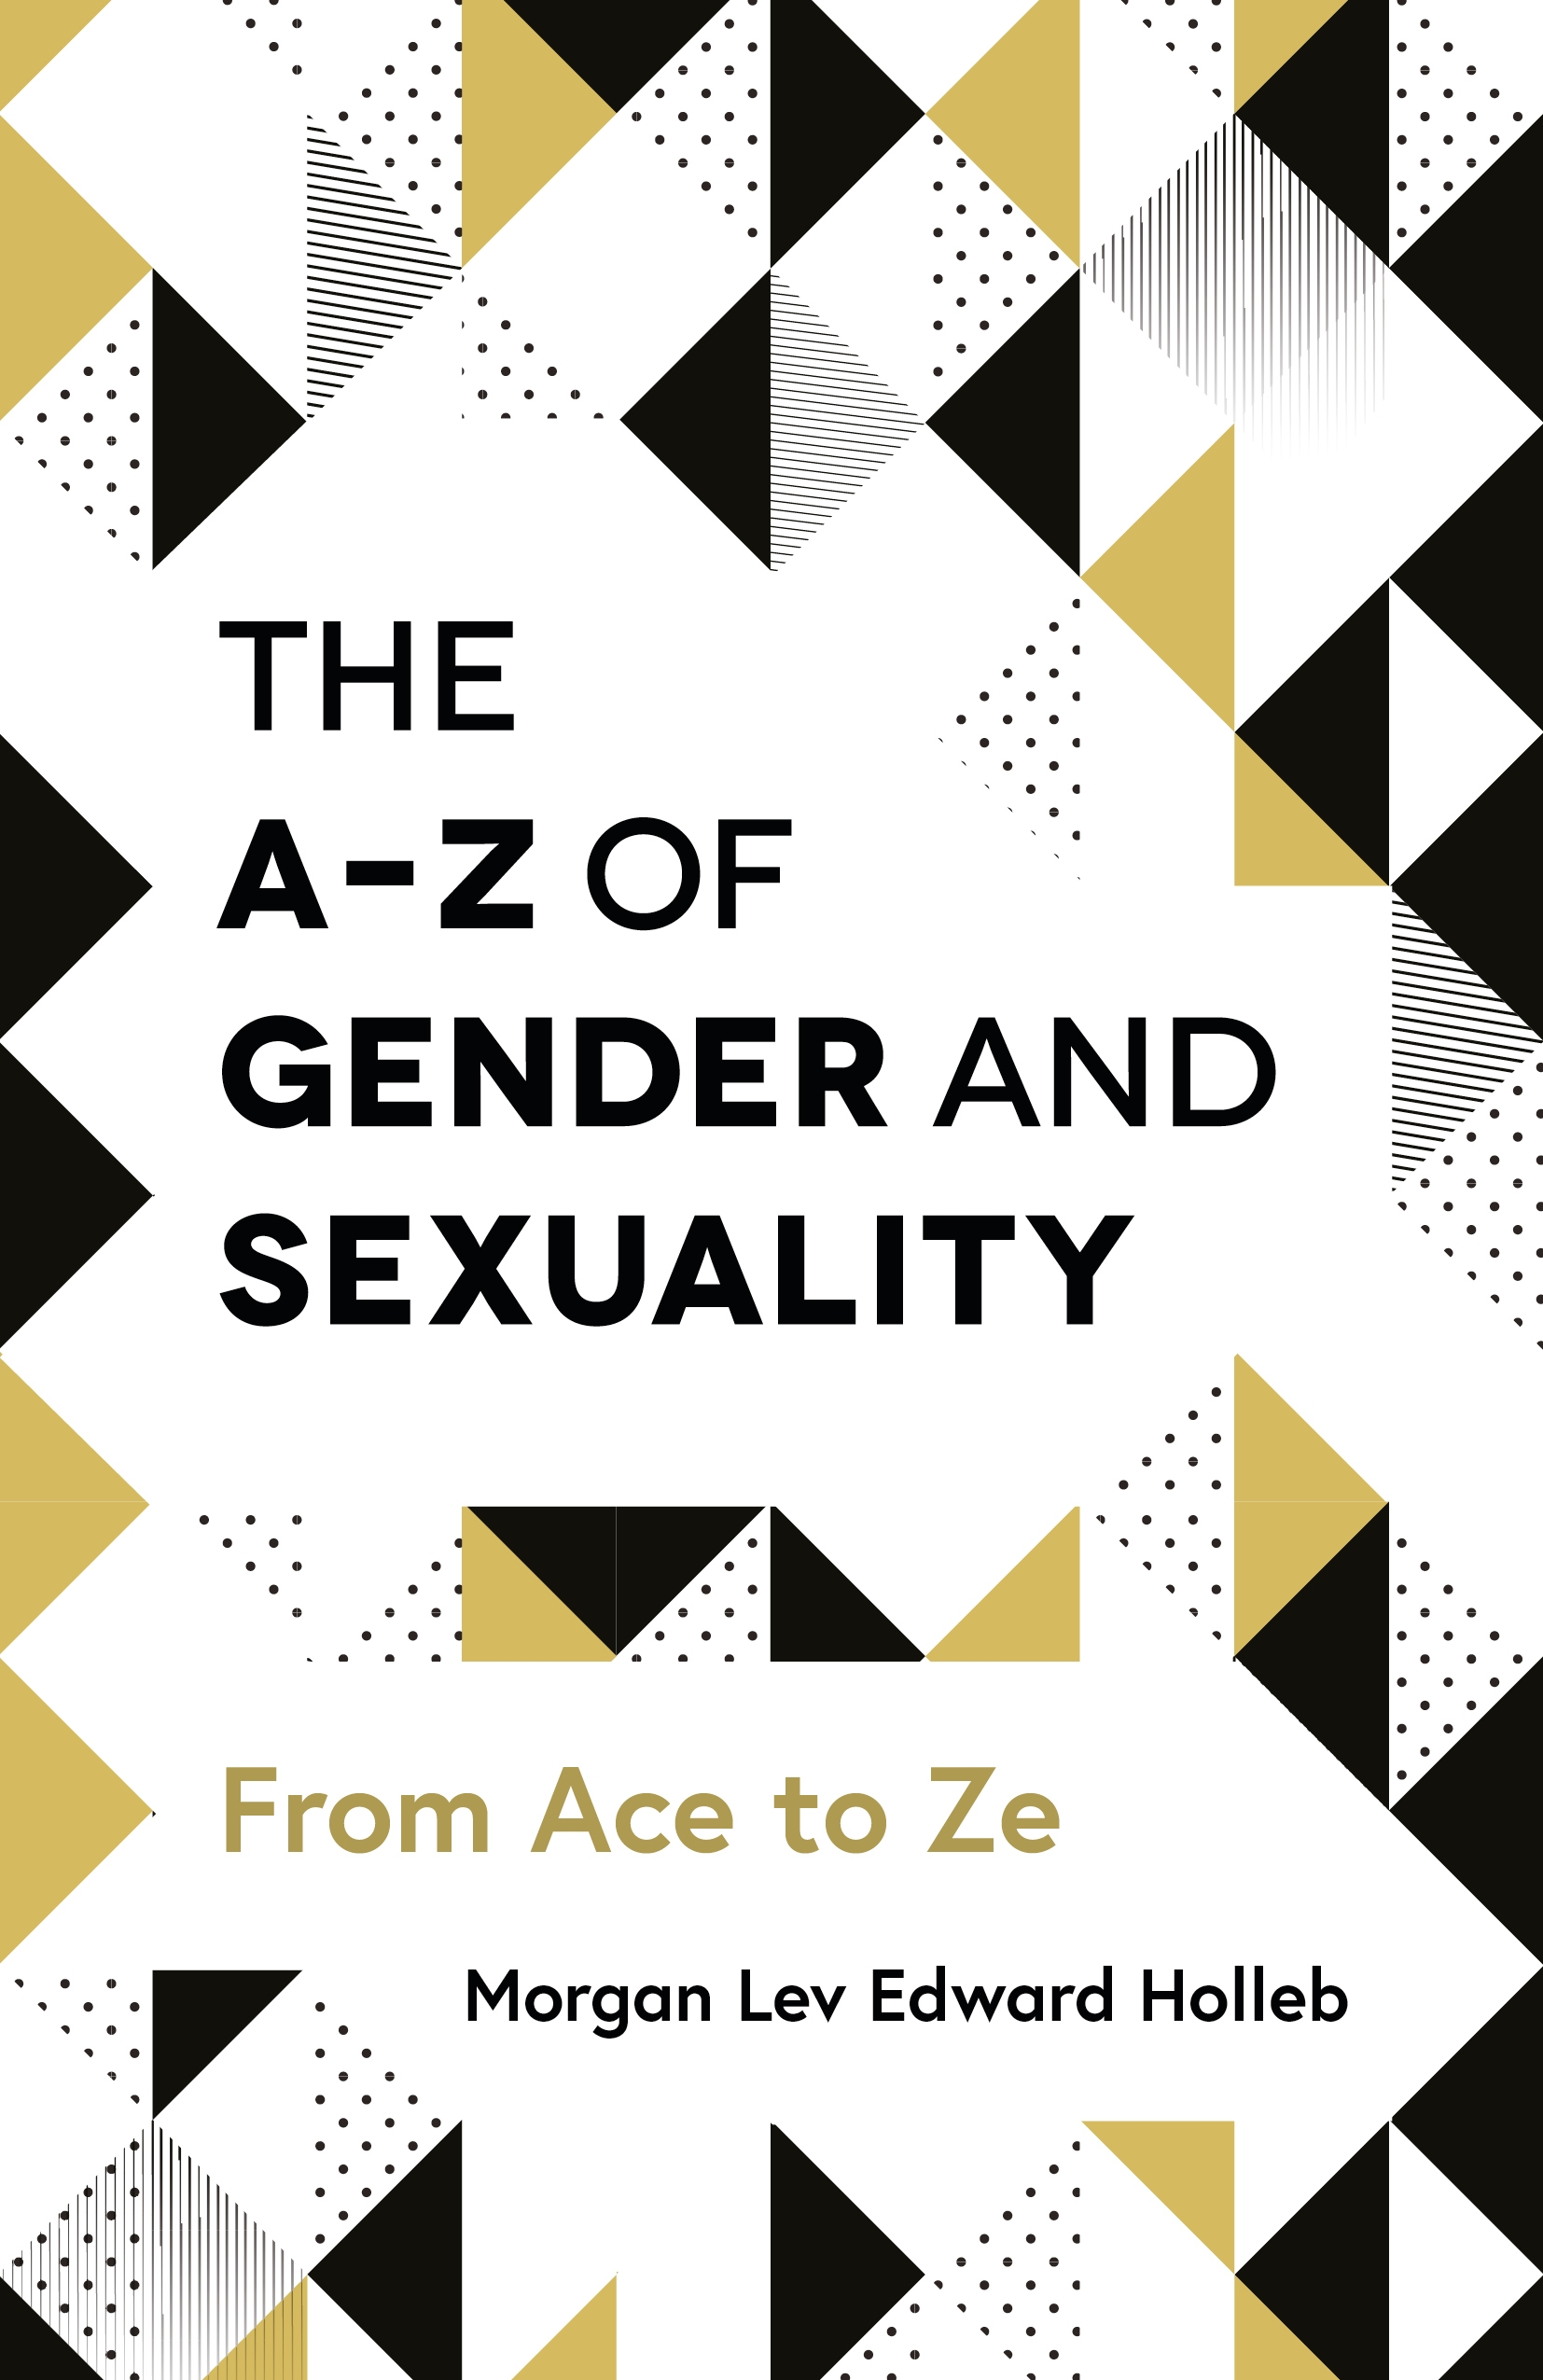 The A-Z of Gender and Sexuality From Ace to Ze